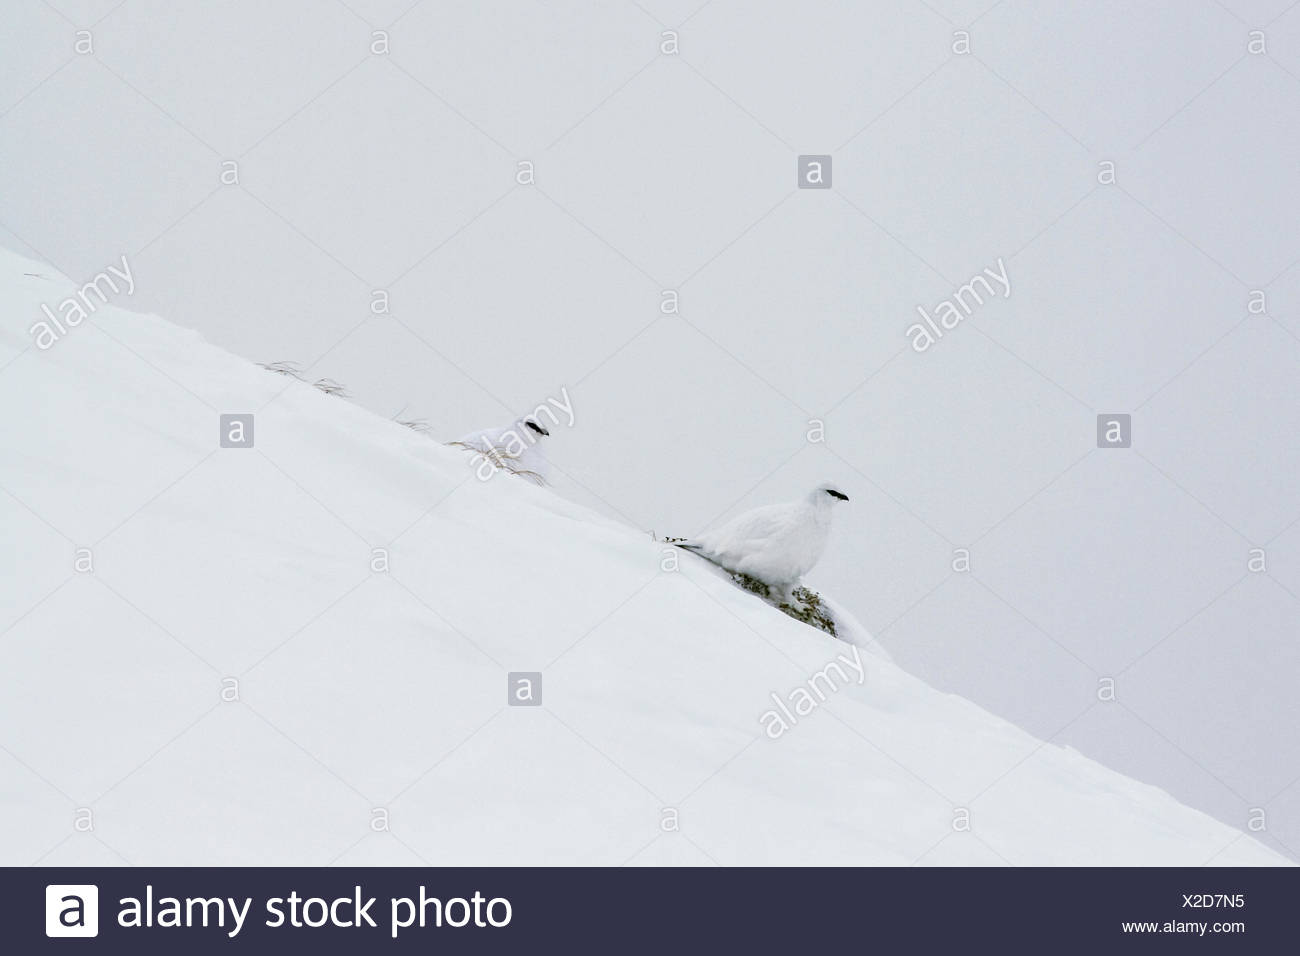 Rock ptarmigans,Lagopus mutus,on a snow covered slope. - Stock Image